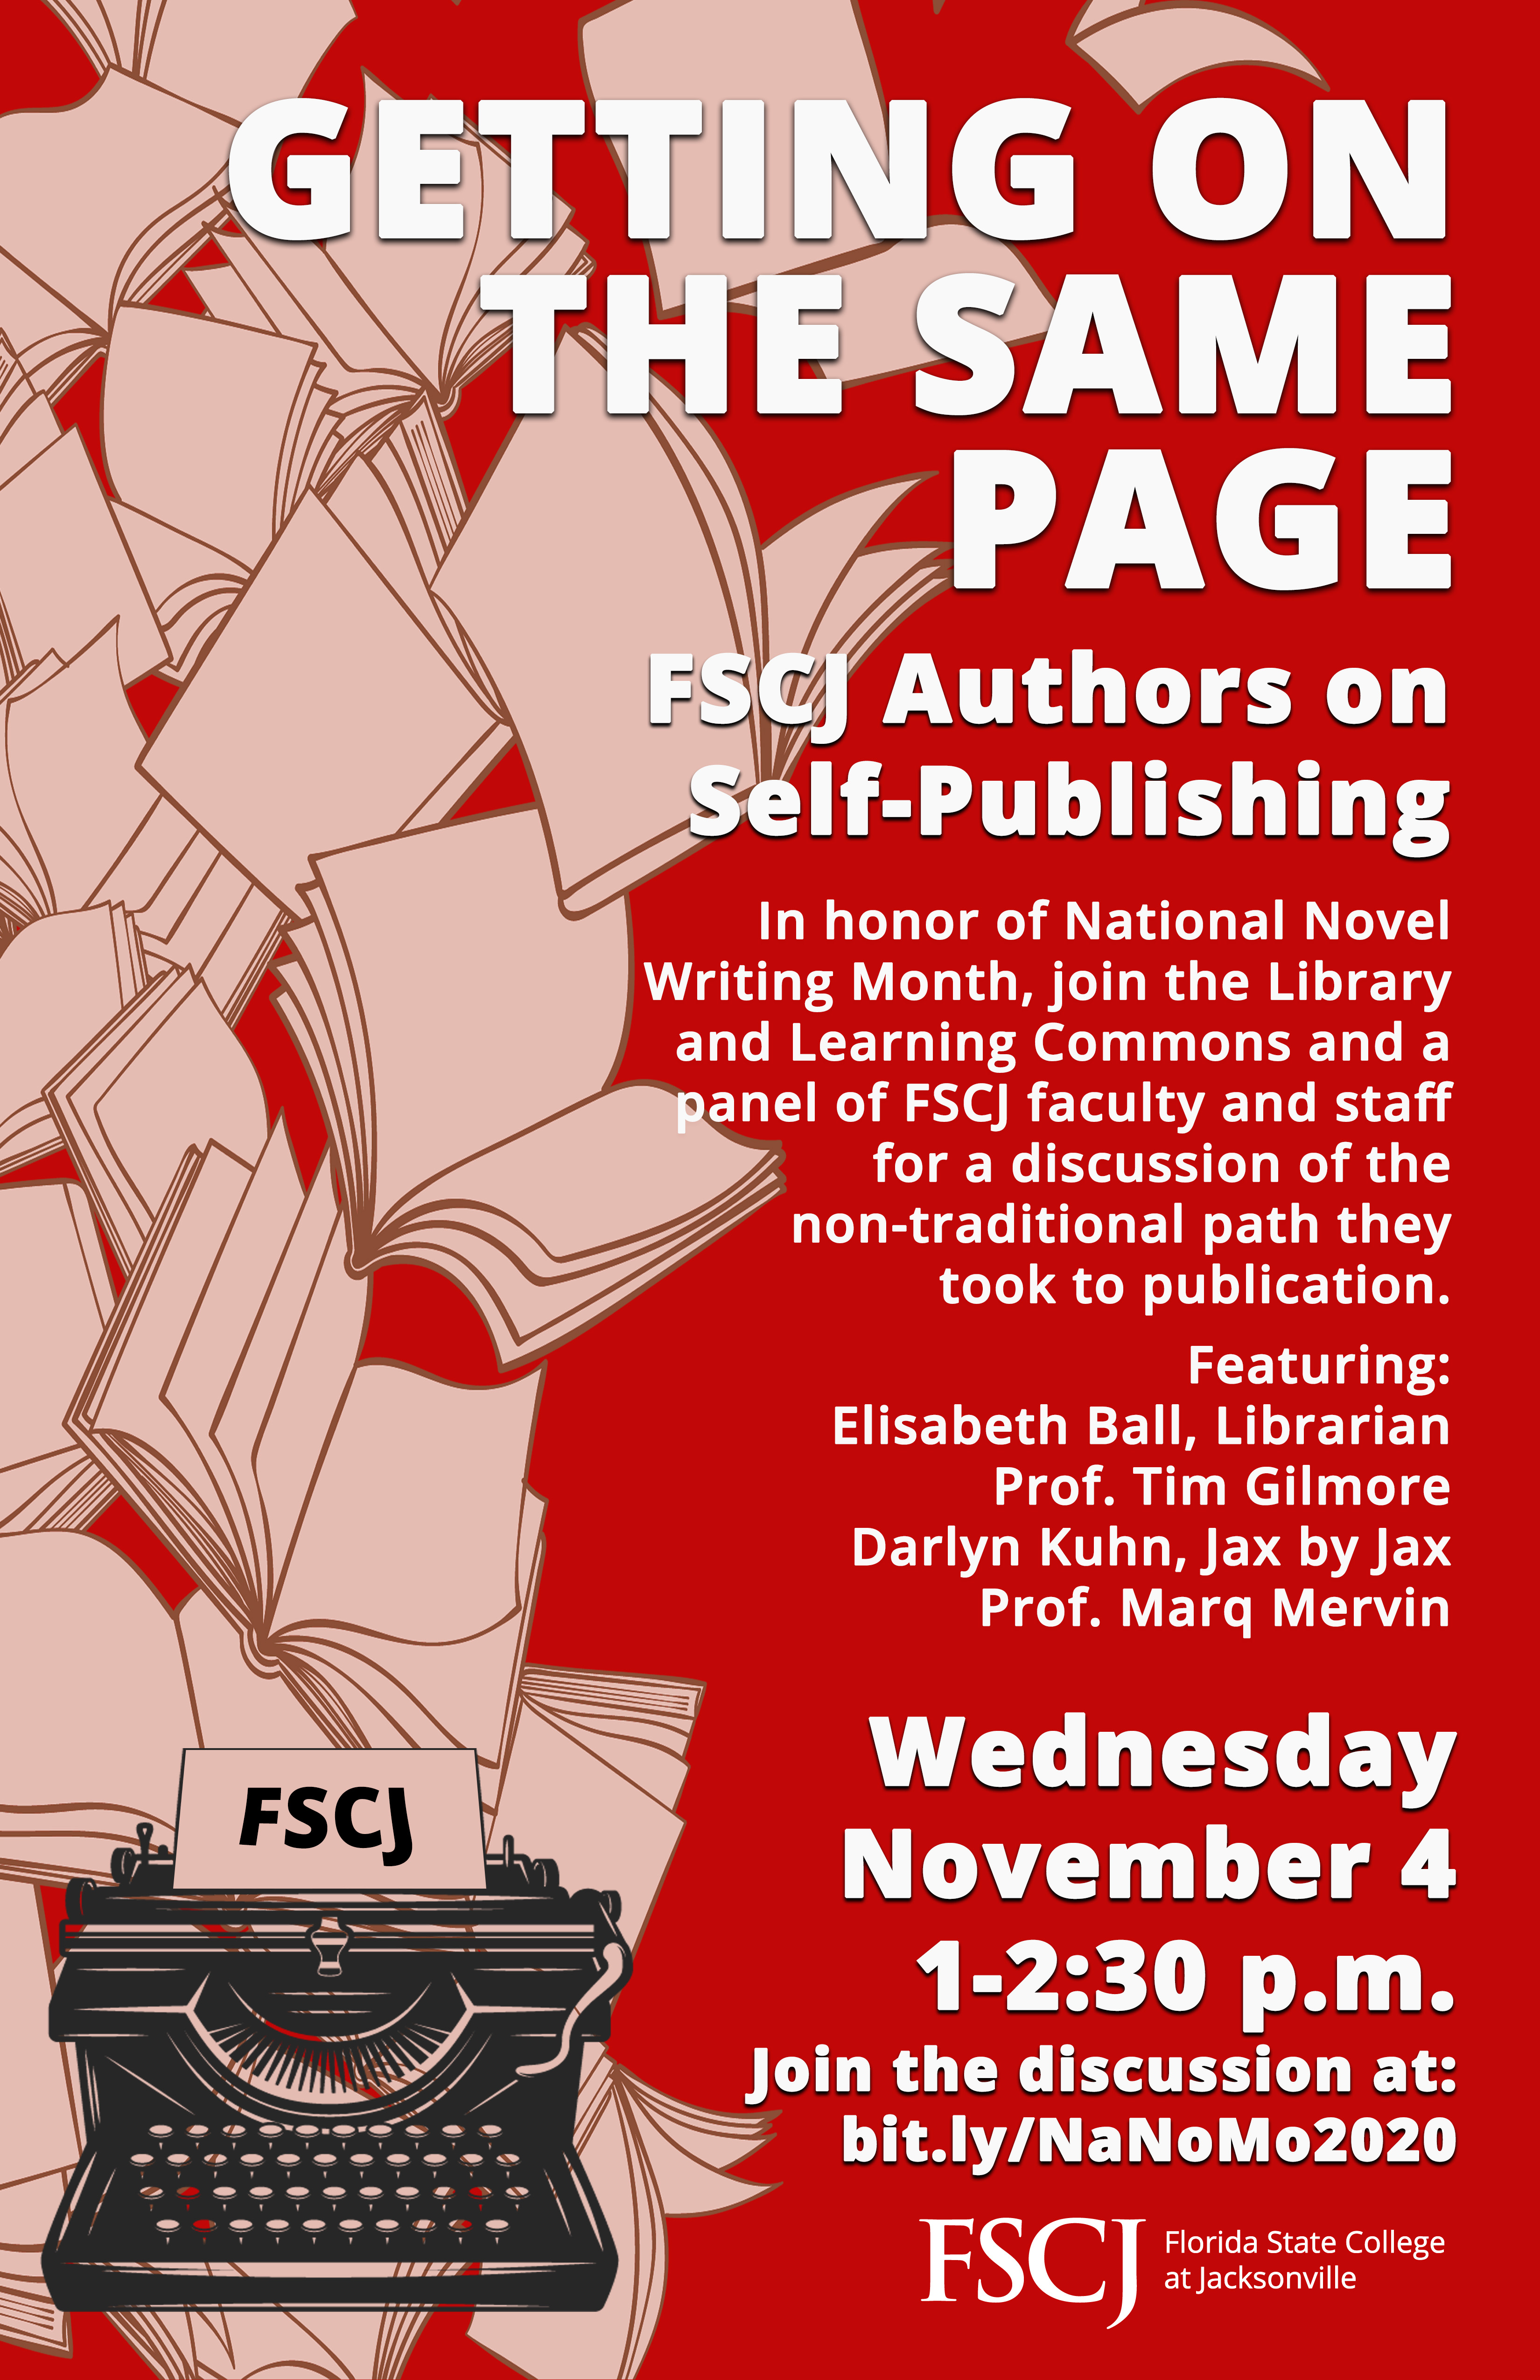 Getting on the Same Page: FSCJ Authors on Self-Publishing